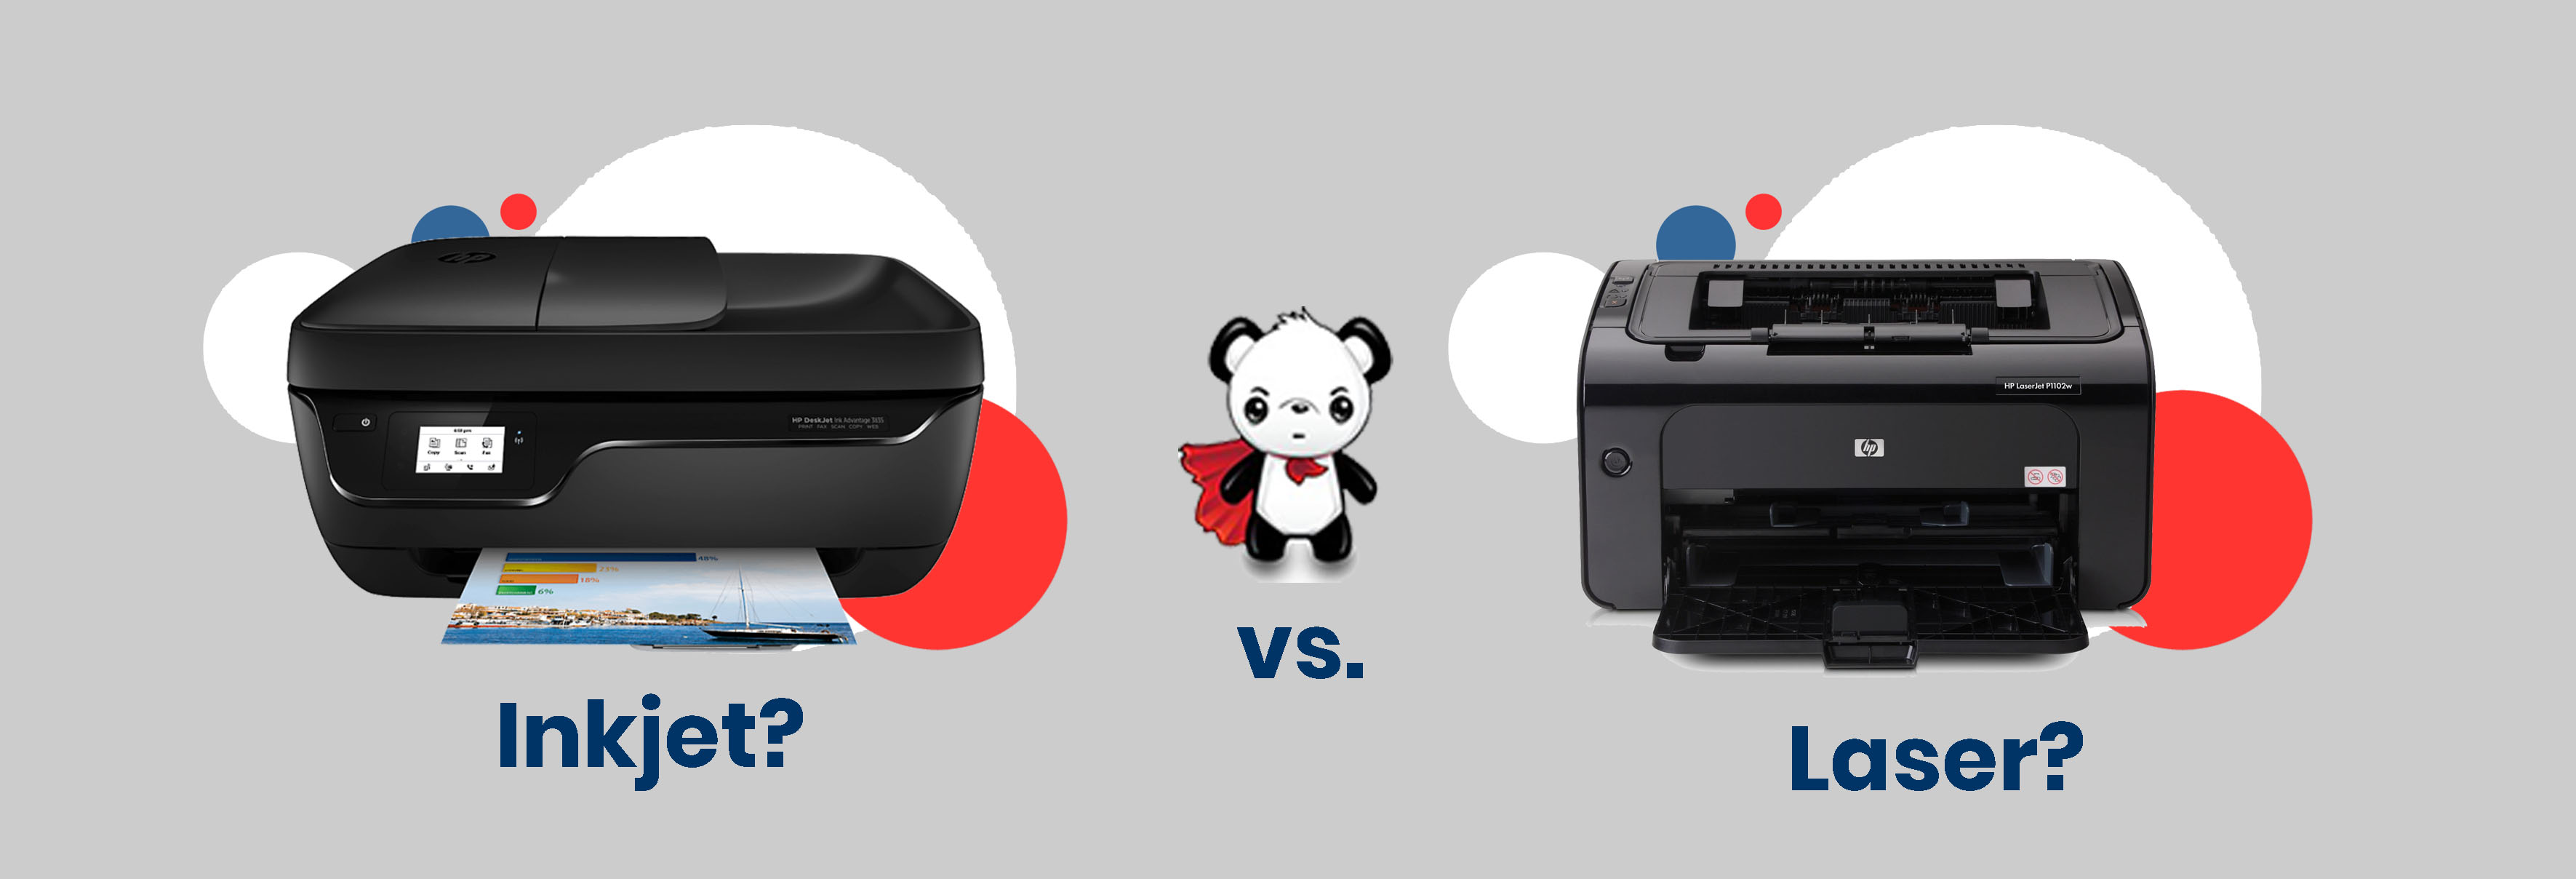 Inkjet vs. Laser: Which is the Better Choice for You?